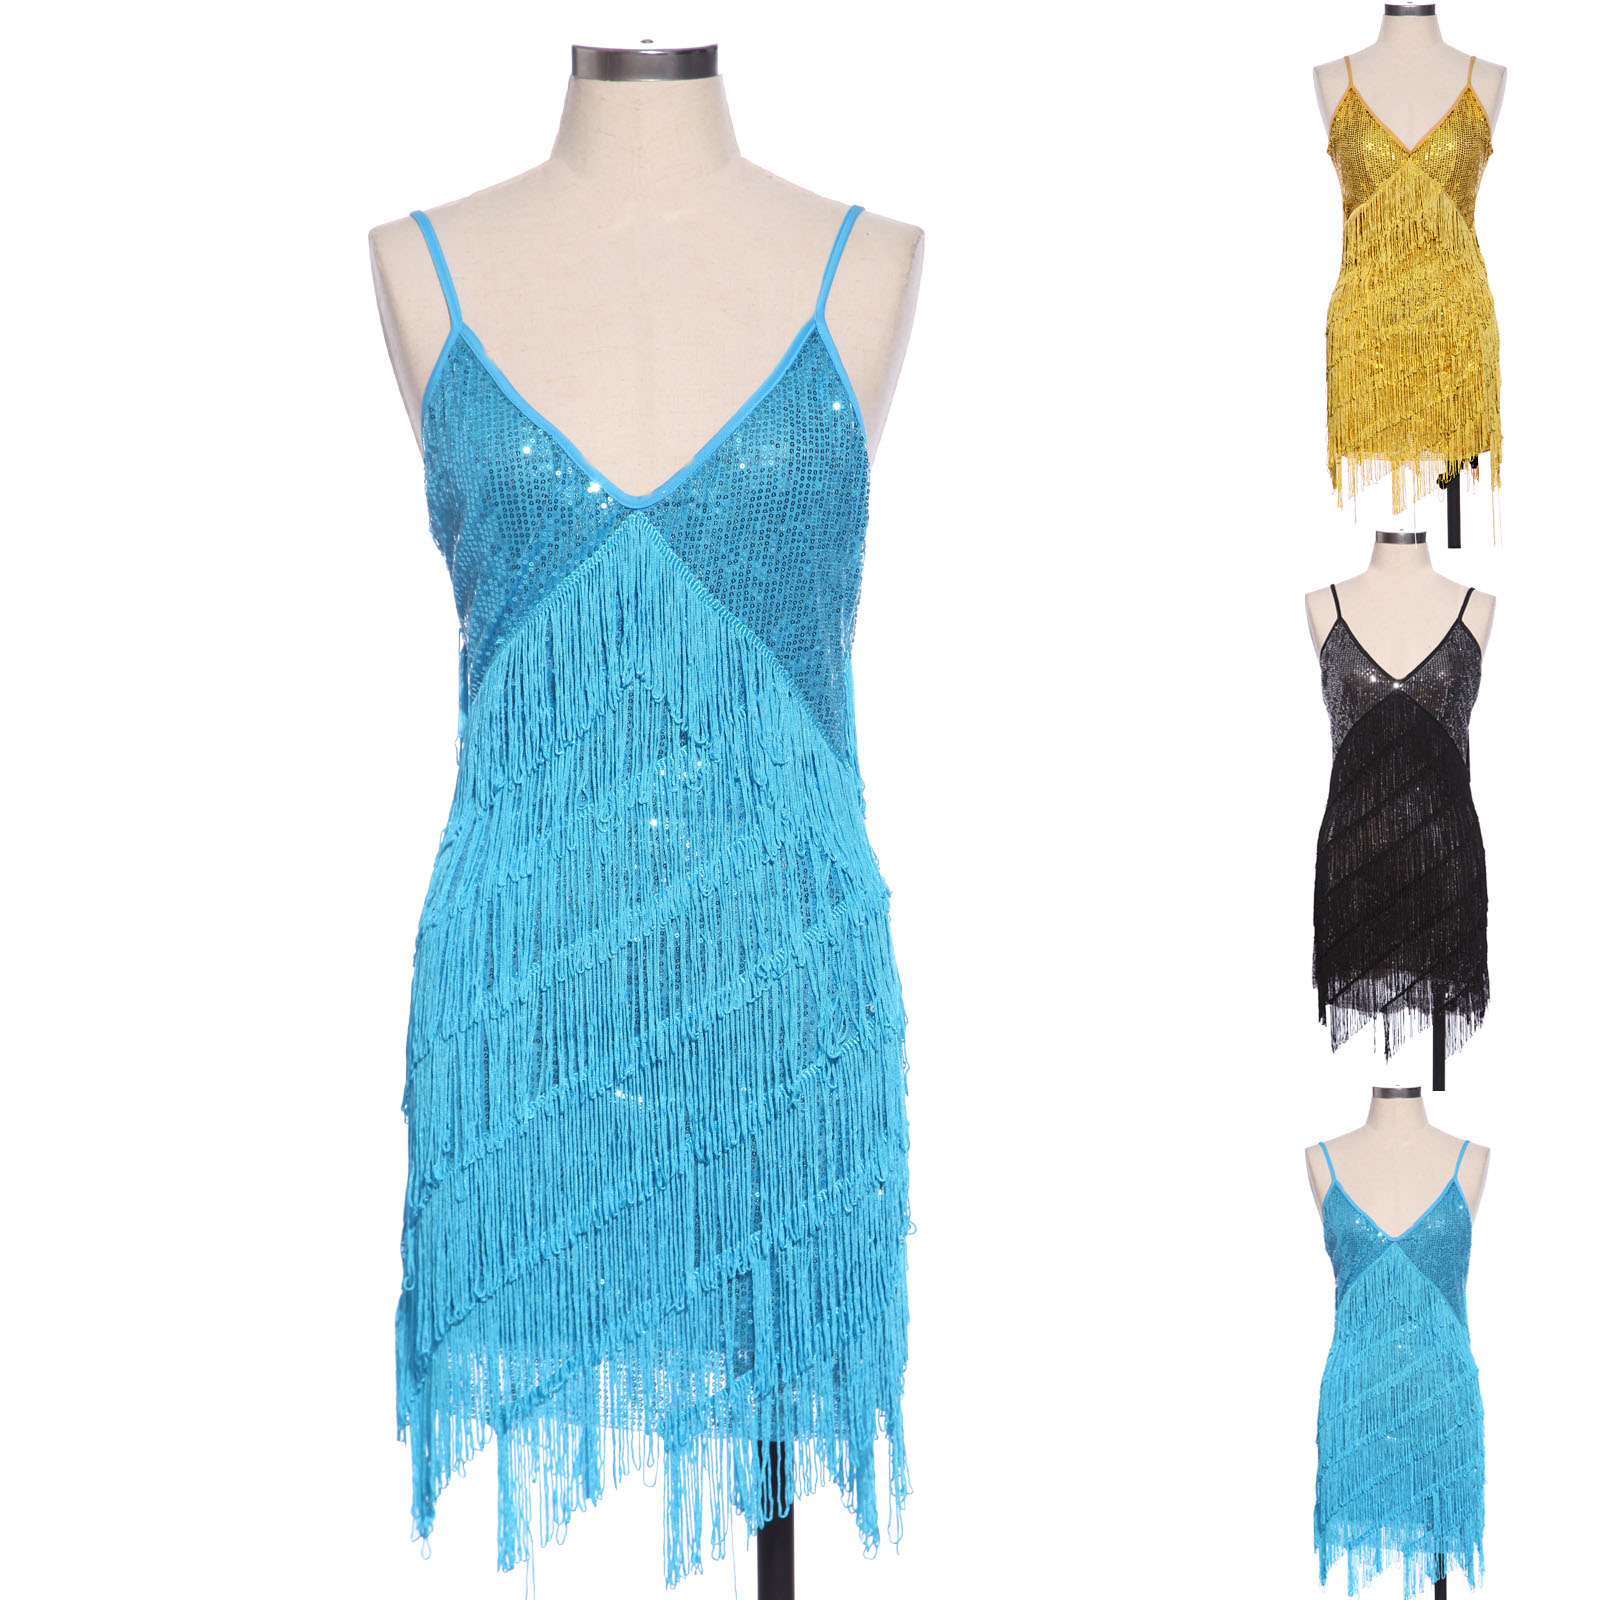 Vintage 1920s Flapper Girl Sequin Fringed Costume Cocktail Party ...